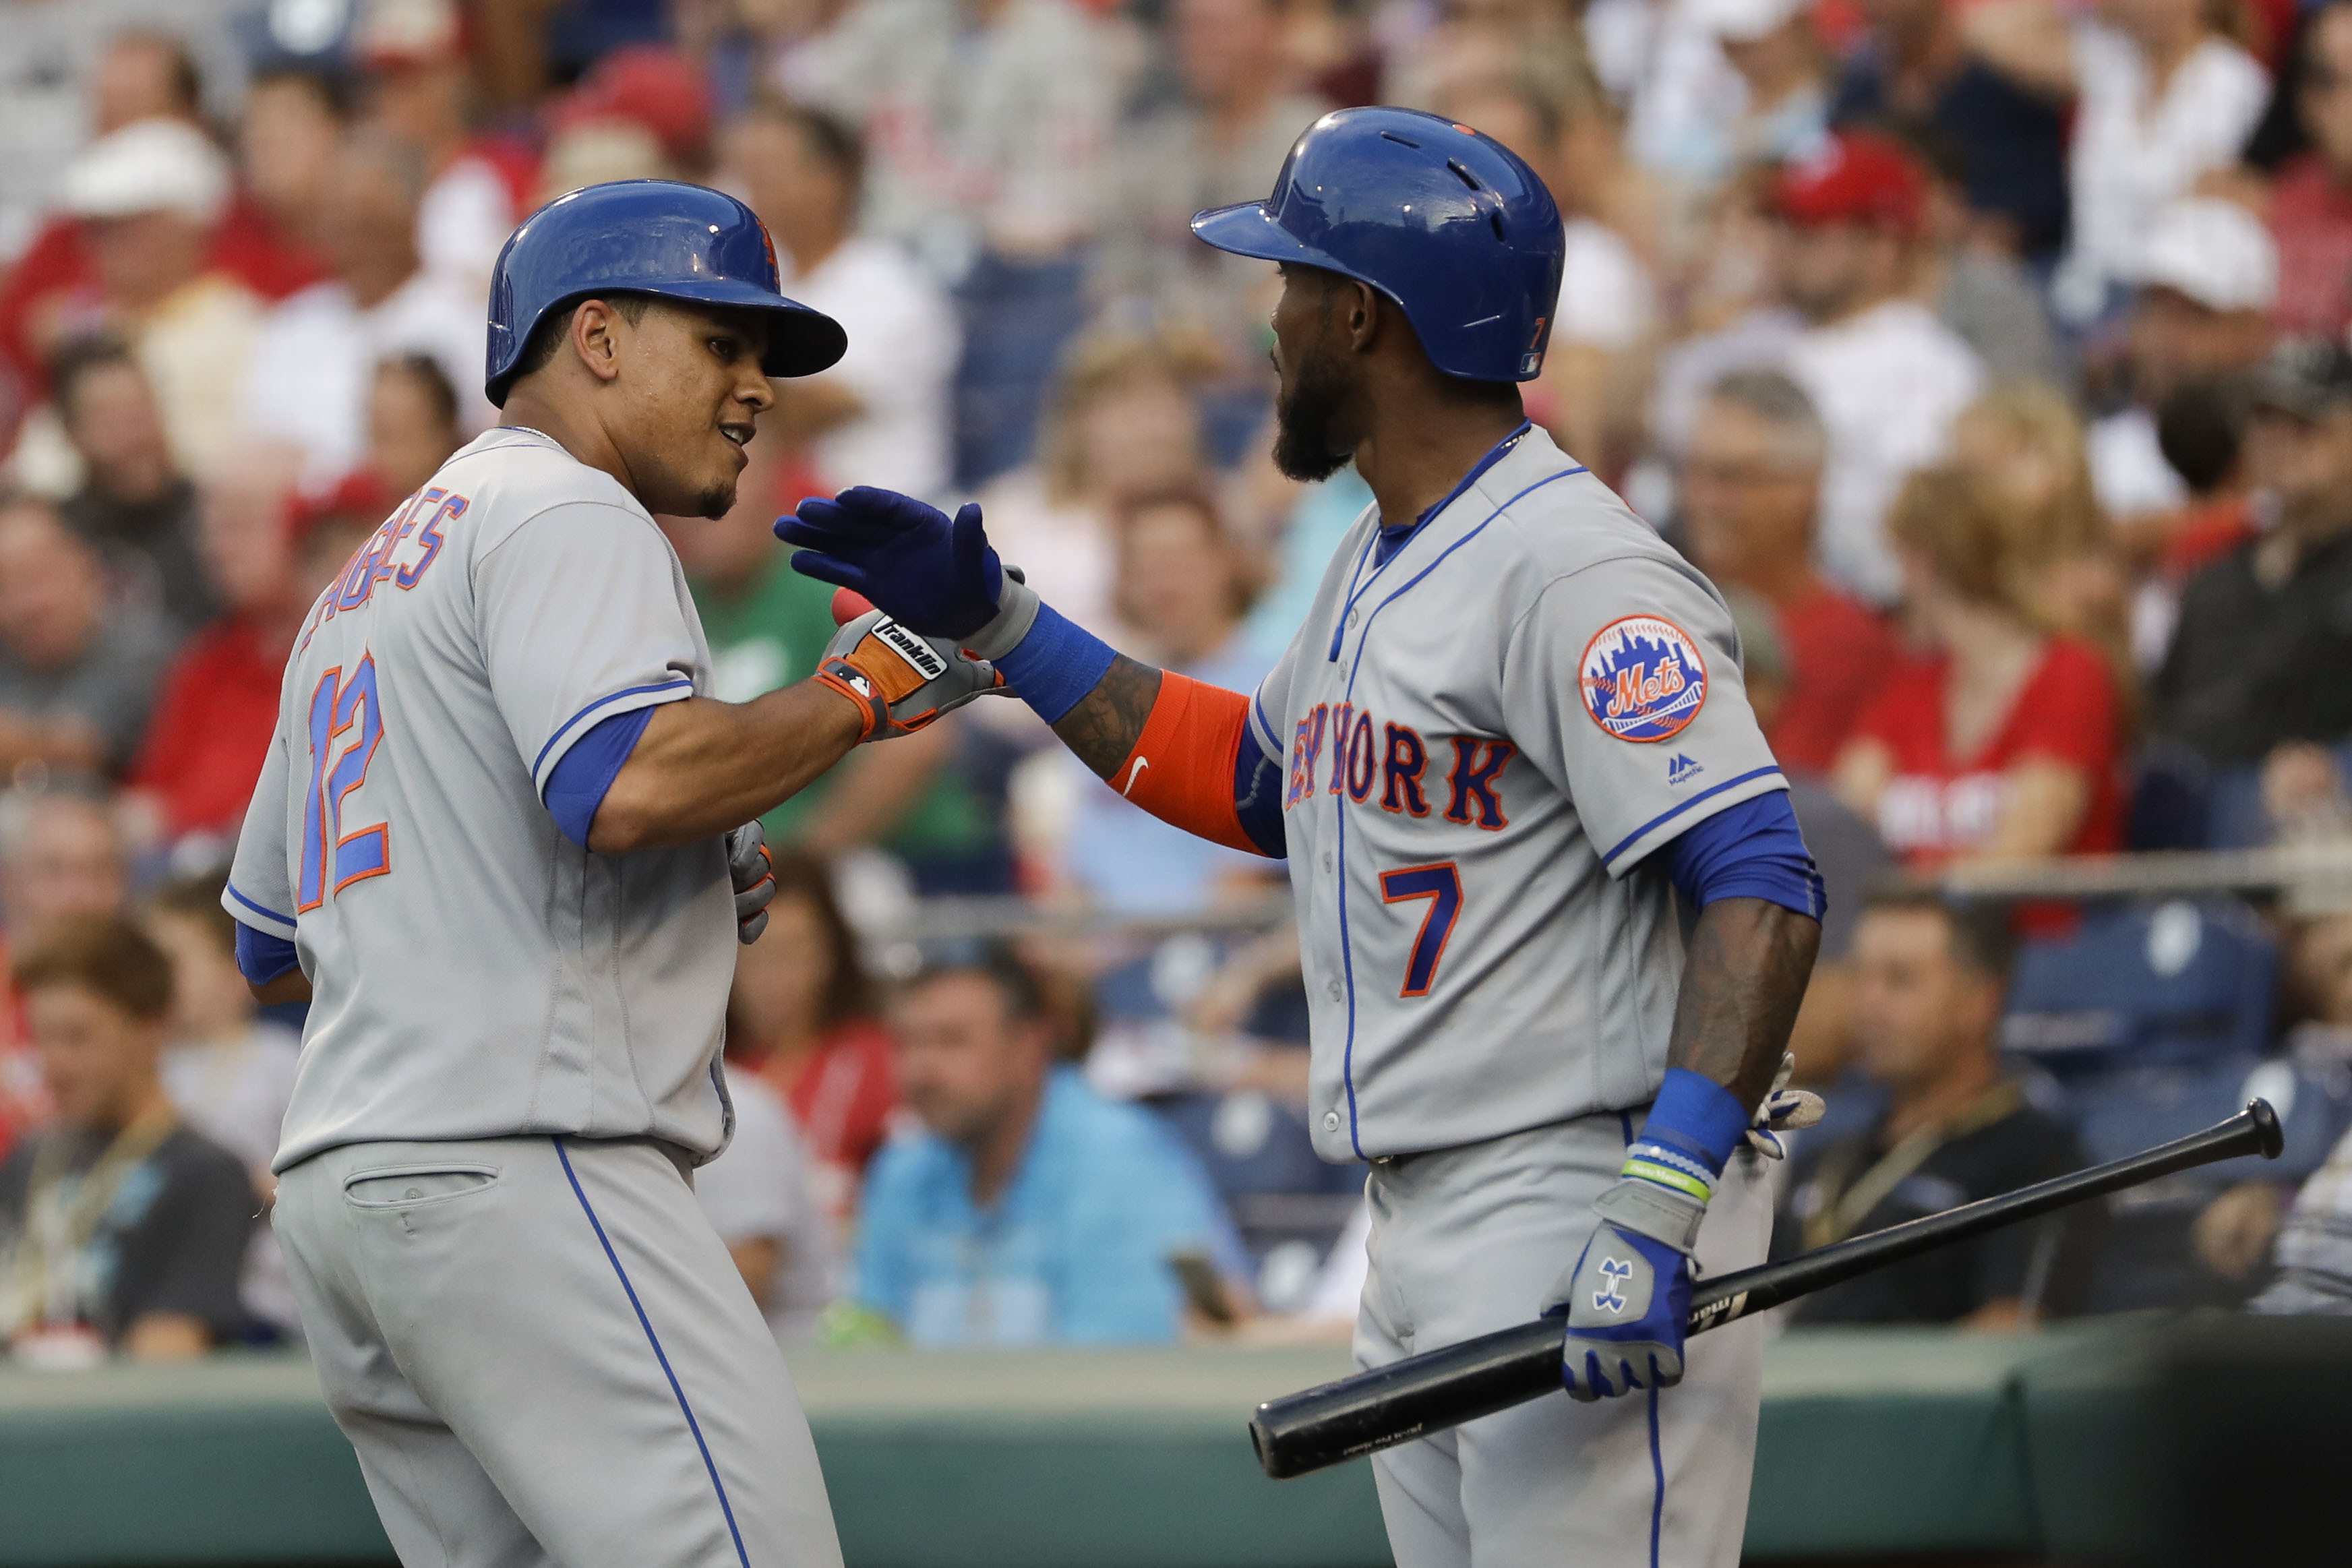 New York Mets' Juan Lagares, left, and Jose Reyes celebrate after Lagares' home run off Philadelphia Phillies starting pitcher Jeremy Hellickson during the third inning of a baseball game, Friday, July 15, 2016, in Philadelphia. (AP Photo/Matt Slocum)